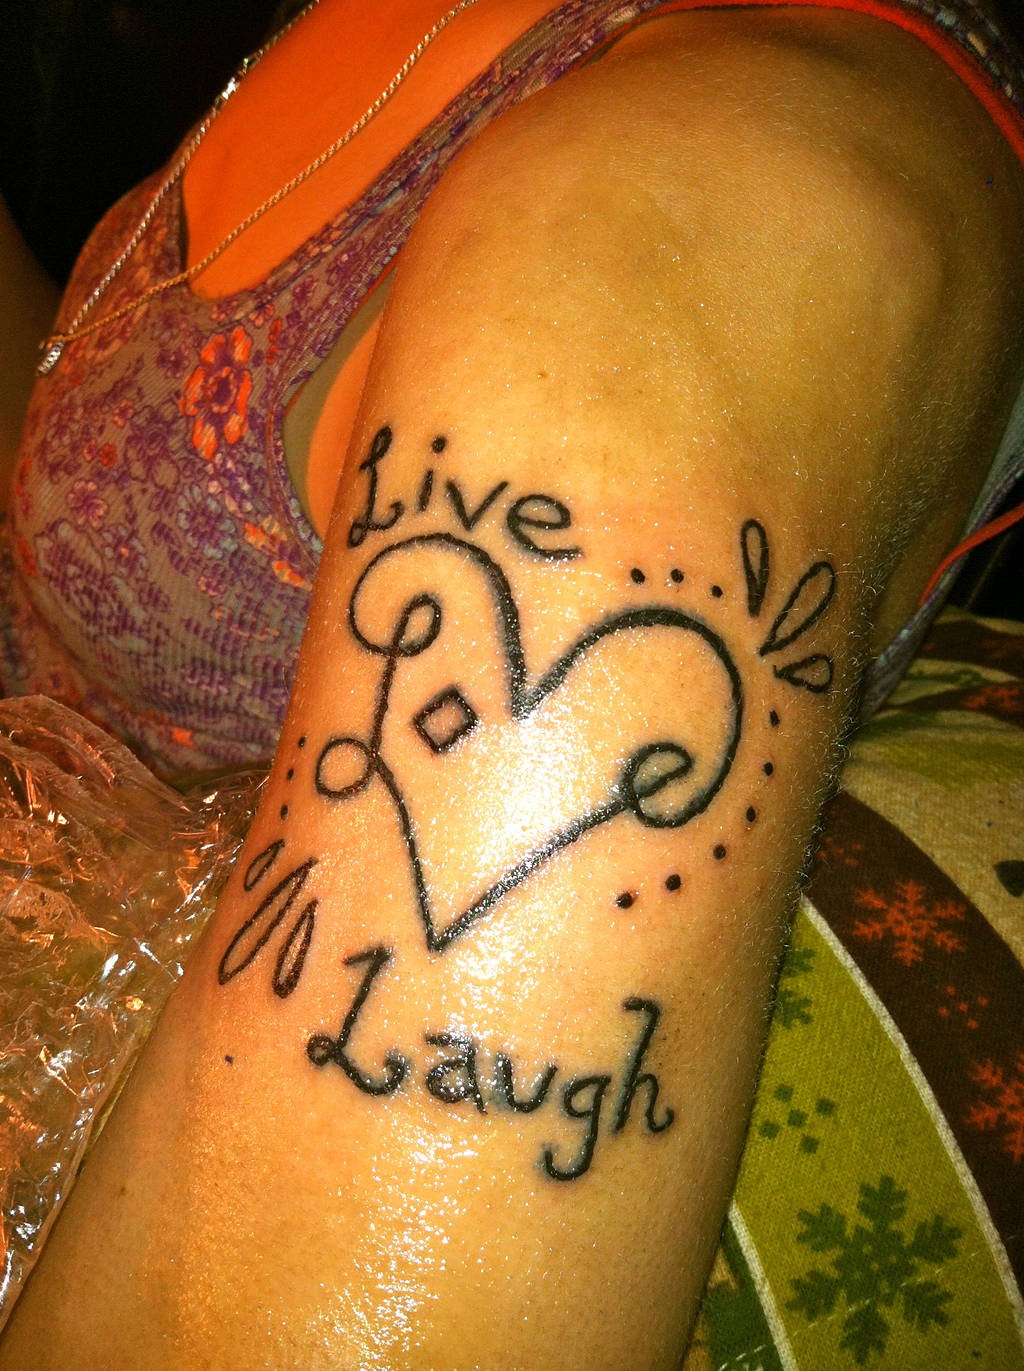 Live love laugh by Cazzombie13